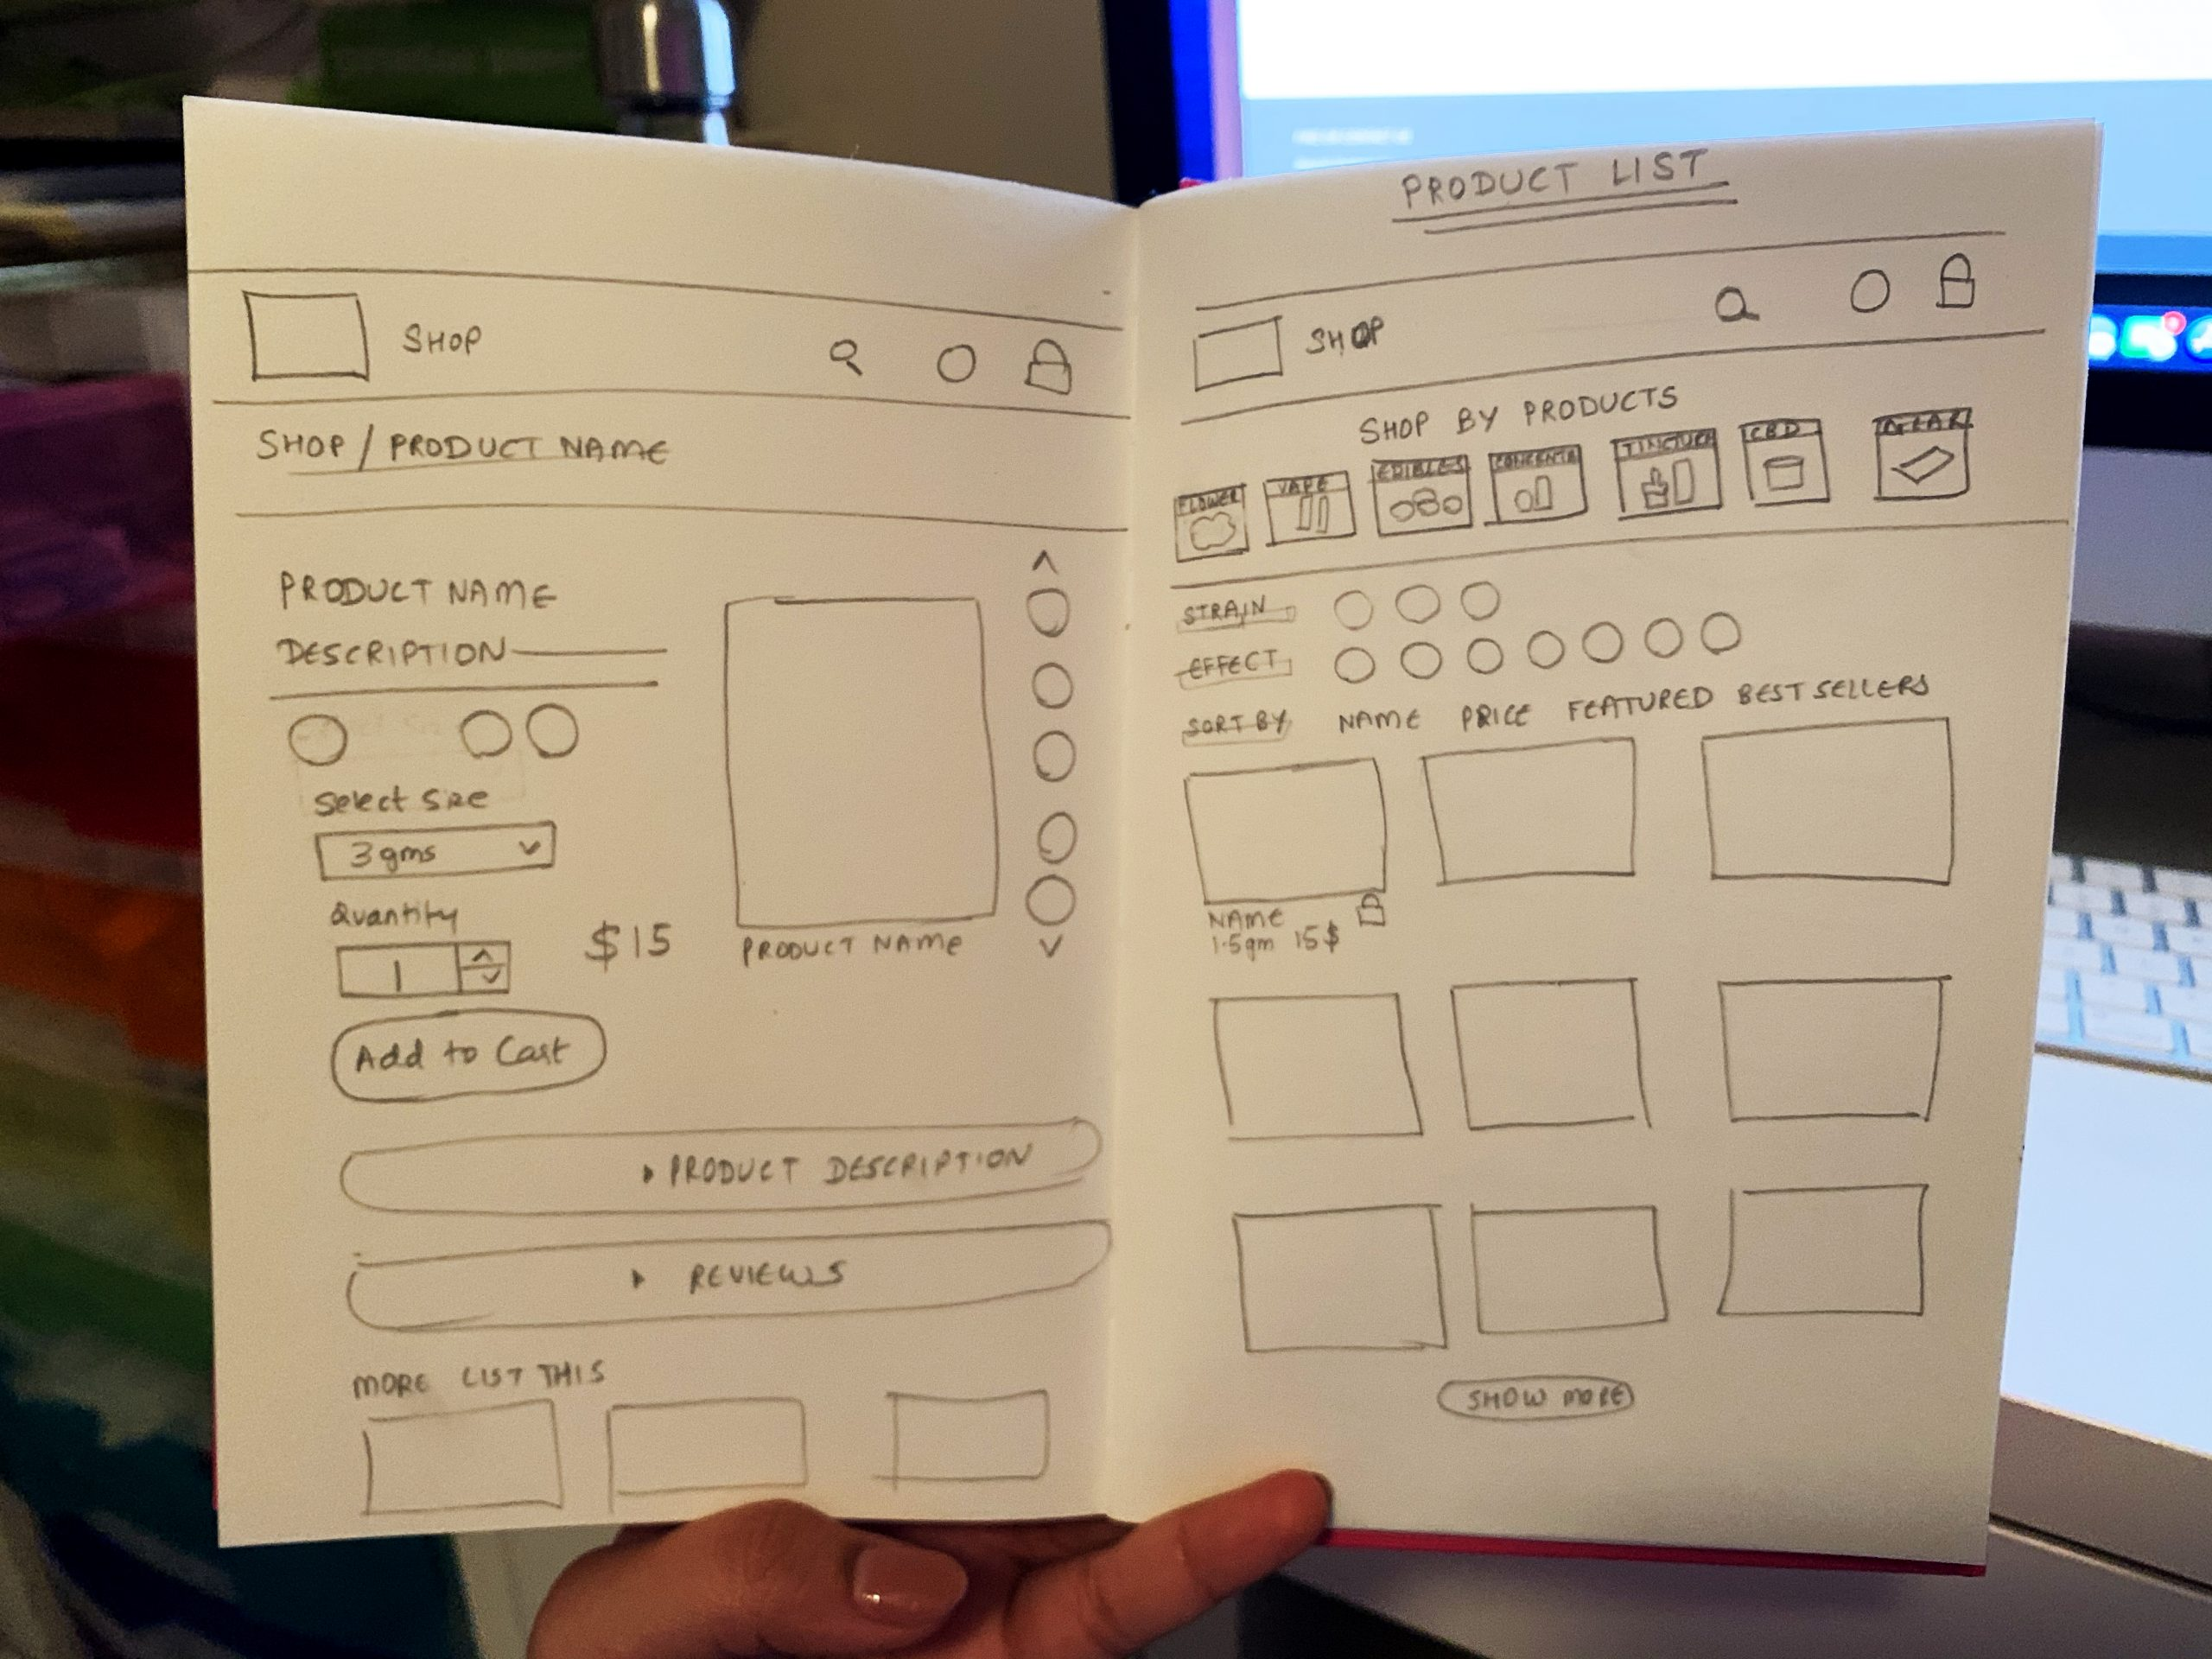 Wireframe_ProductPage